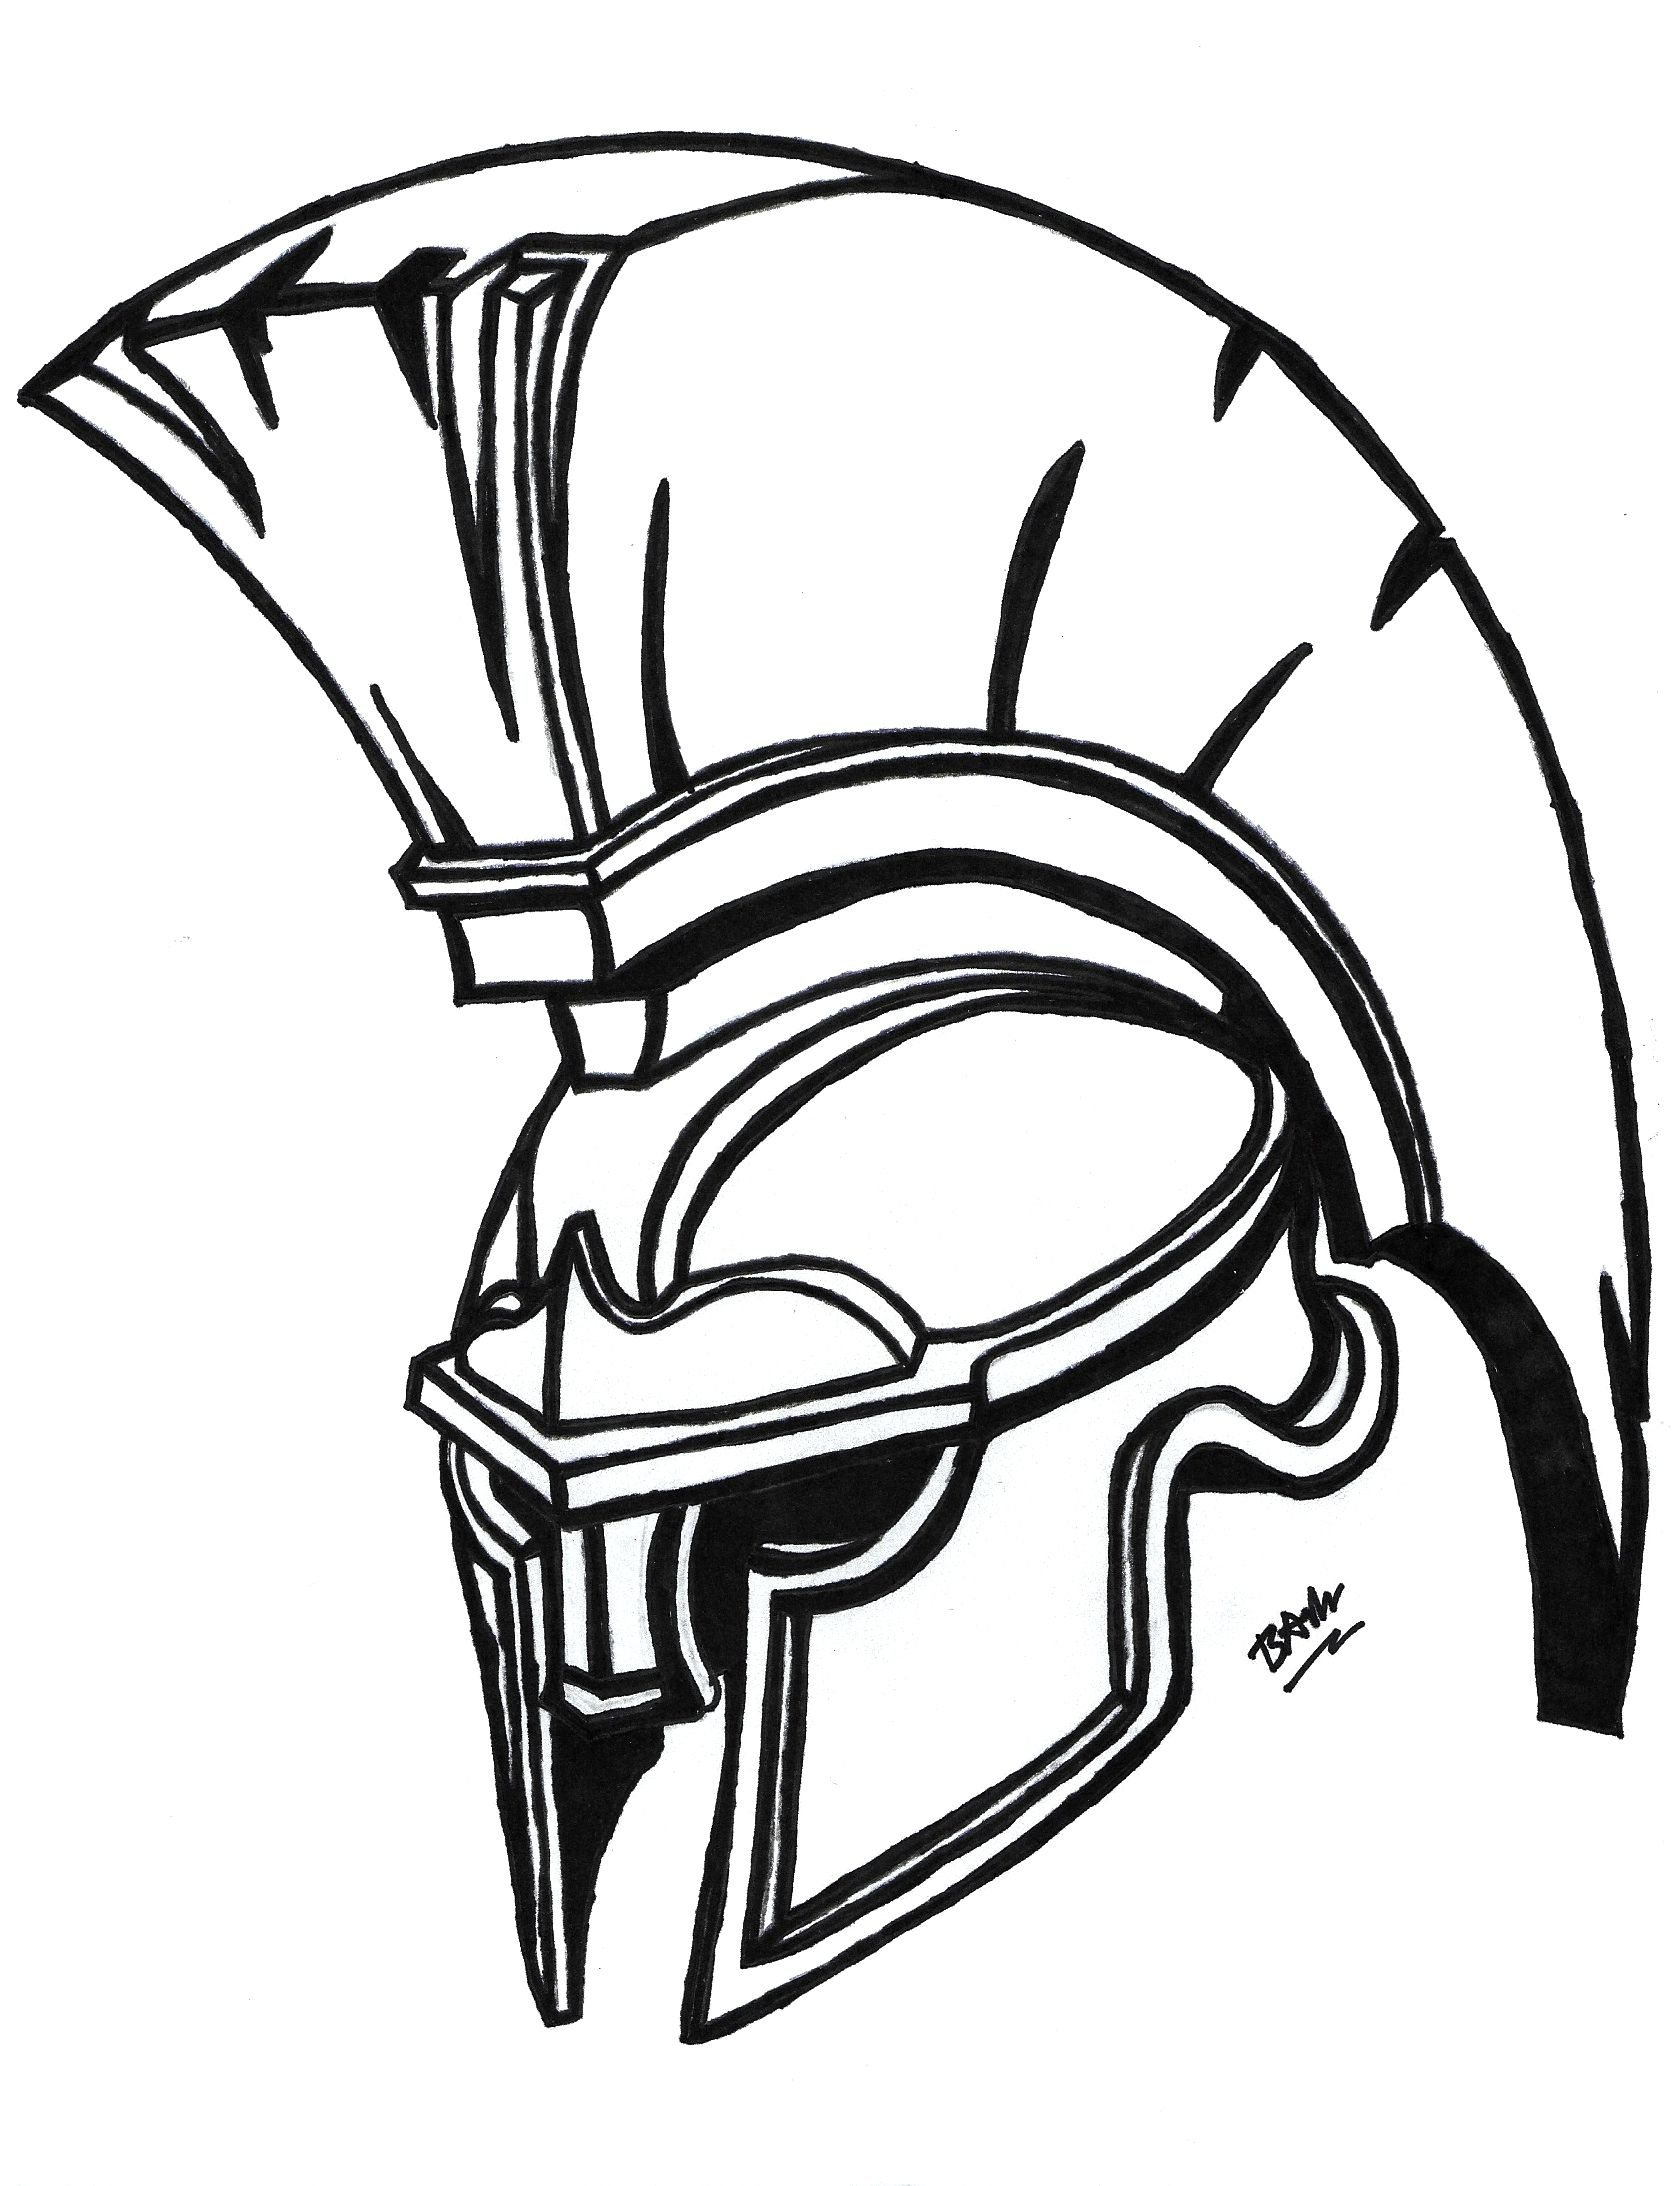 Spartan Helmet Drawing : spartan, helmet, drawing, Spartan, Helmet], Drawing, Available, Purchase, Glossy, Photo, Paper, Shipping, Coloring, Pages,, Helmet, Drawing,, Roman, Warriors